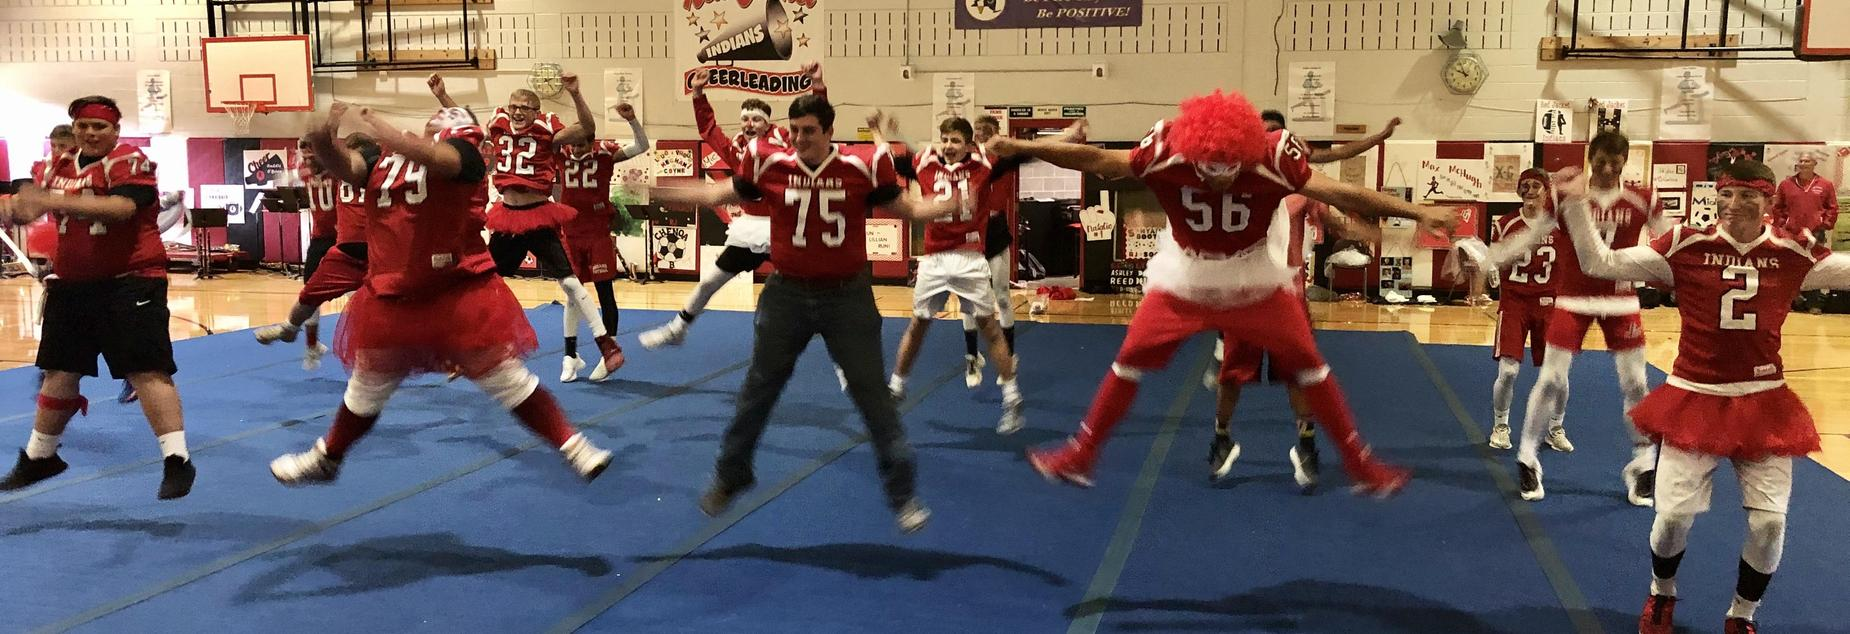 Pep Rally- Football Team's cheer routine